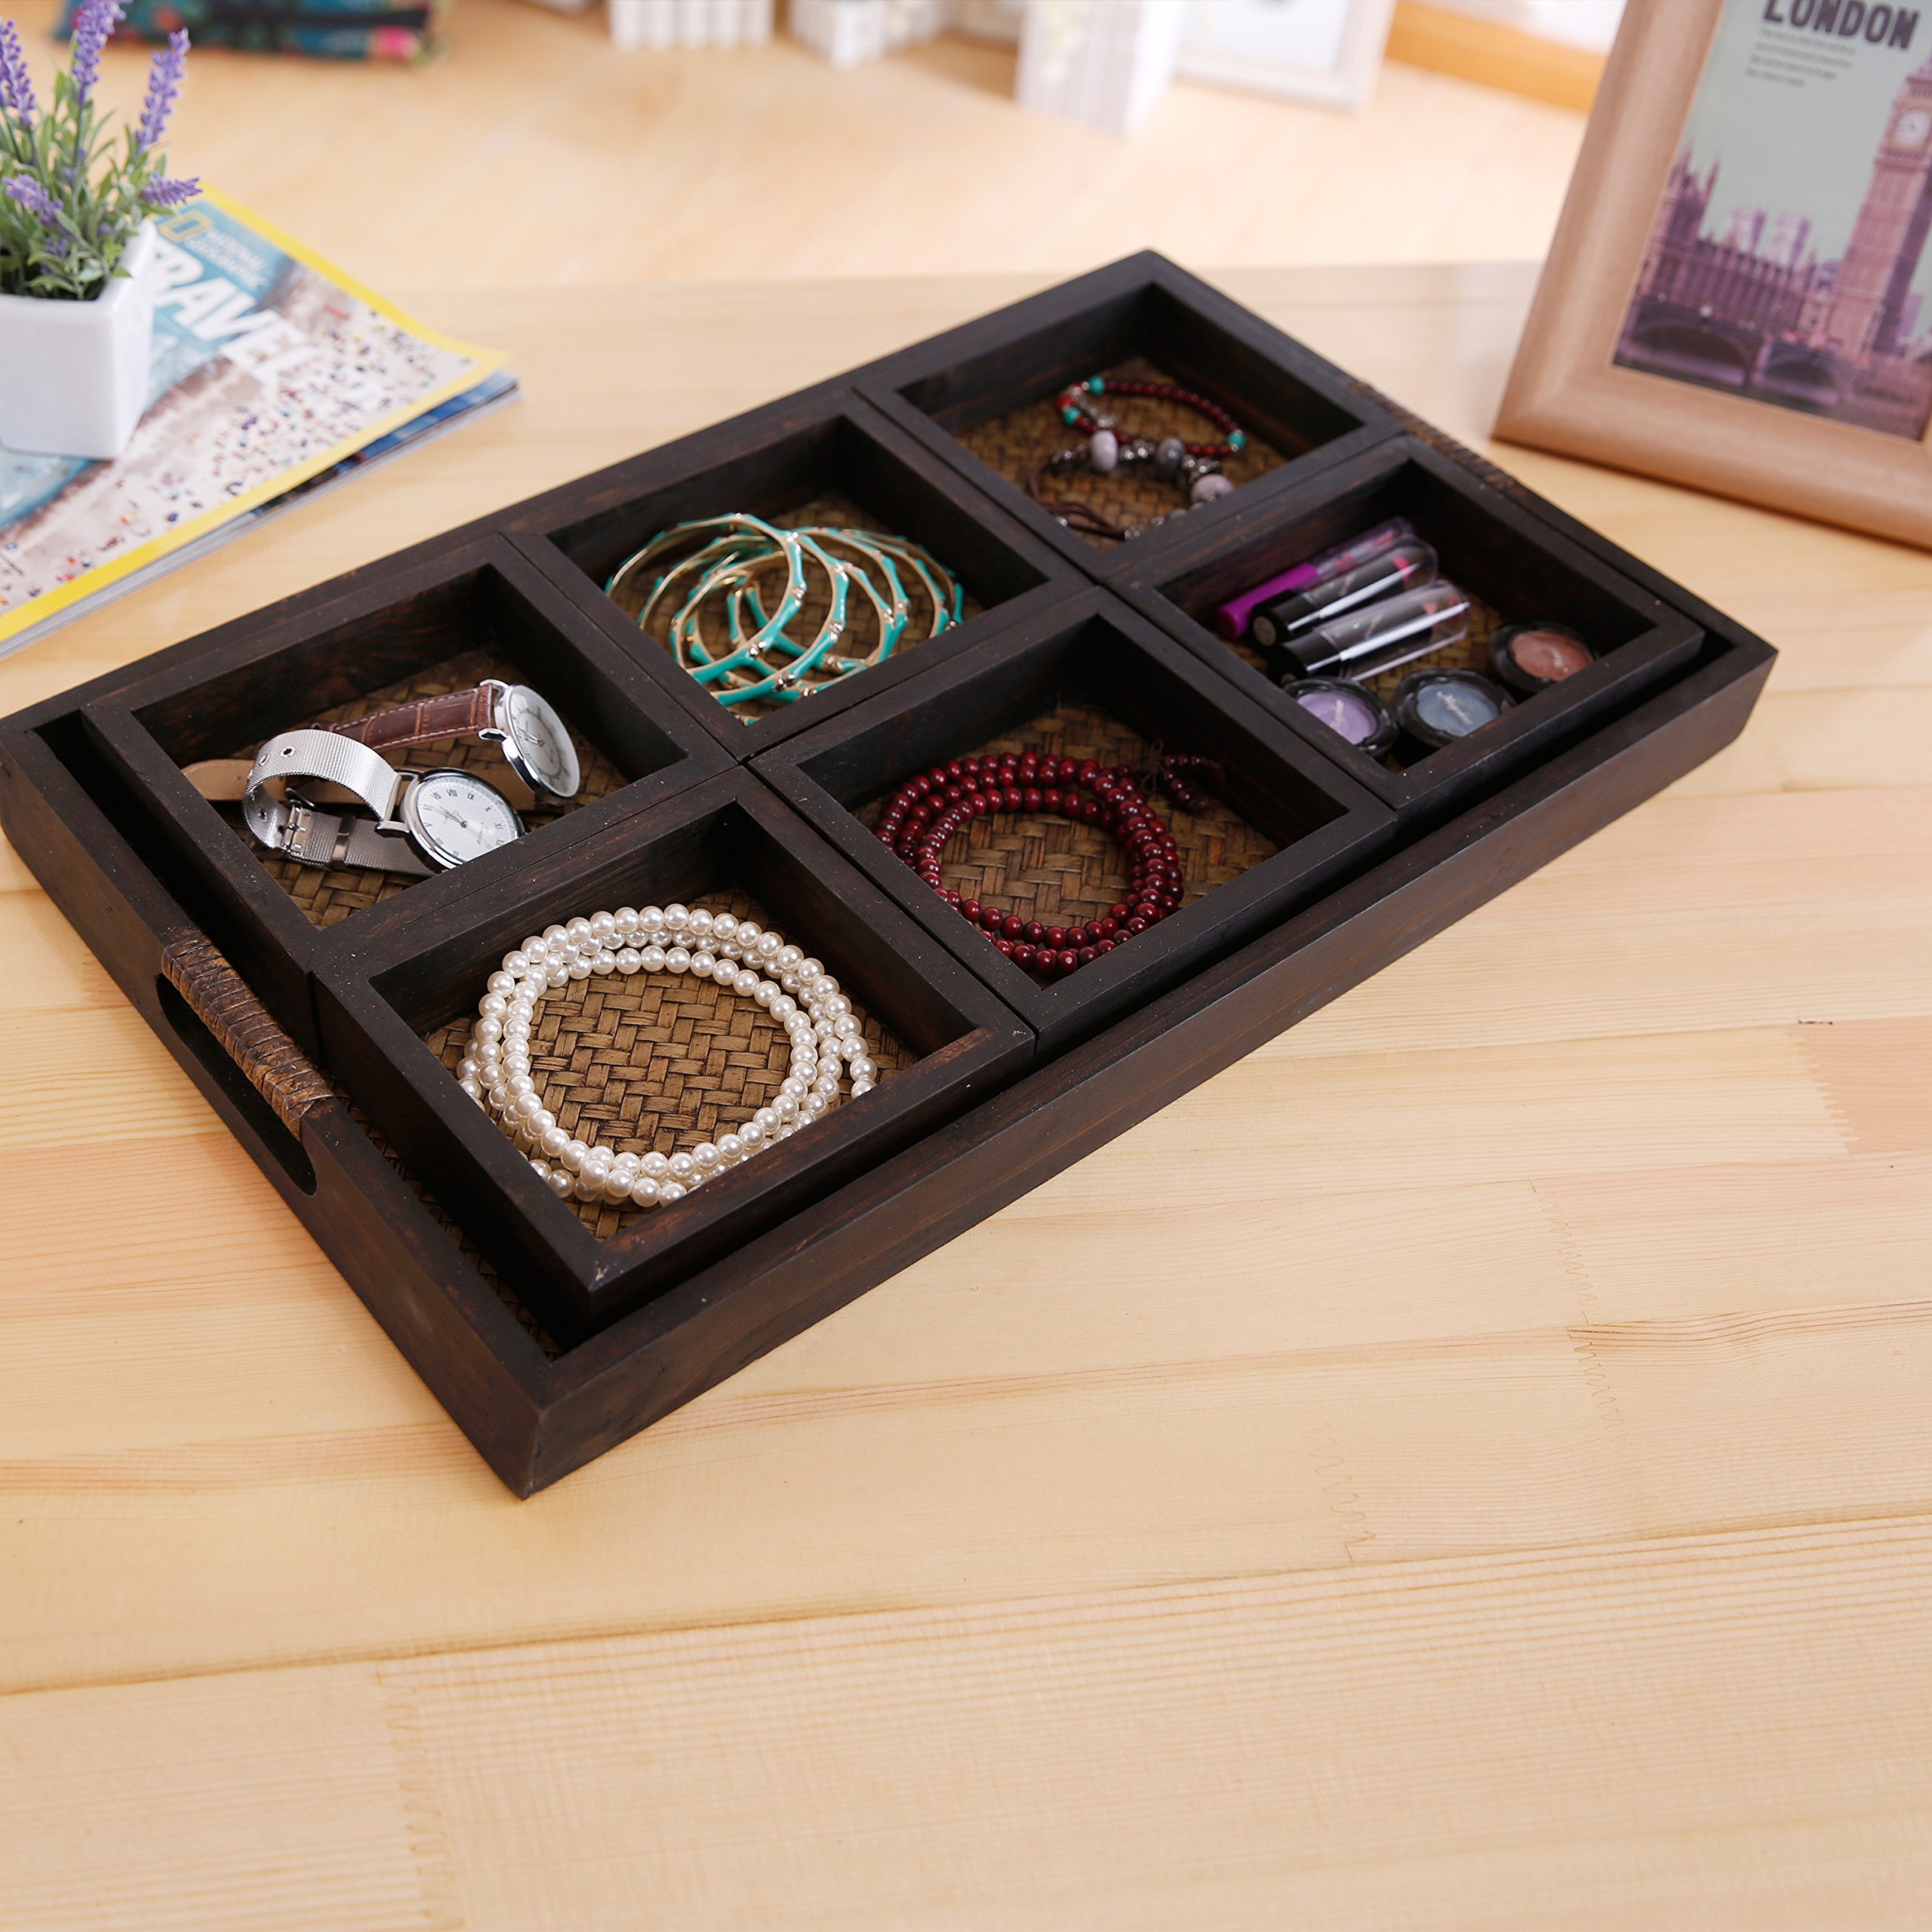 MyGift 7 Piece Flocked Nesting Mango Wood and Woven Rattan Jewelry Organizer Display Trays by MyGift (Image #3)